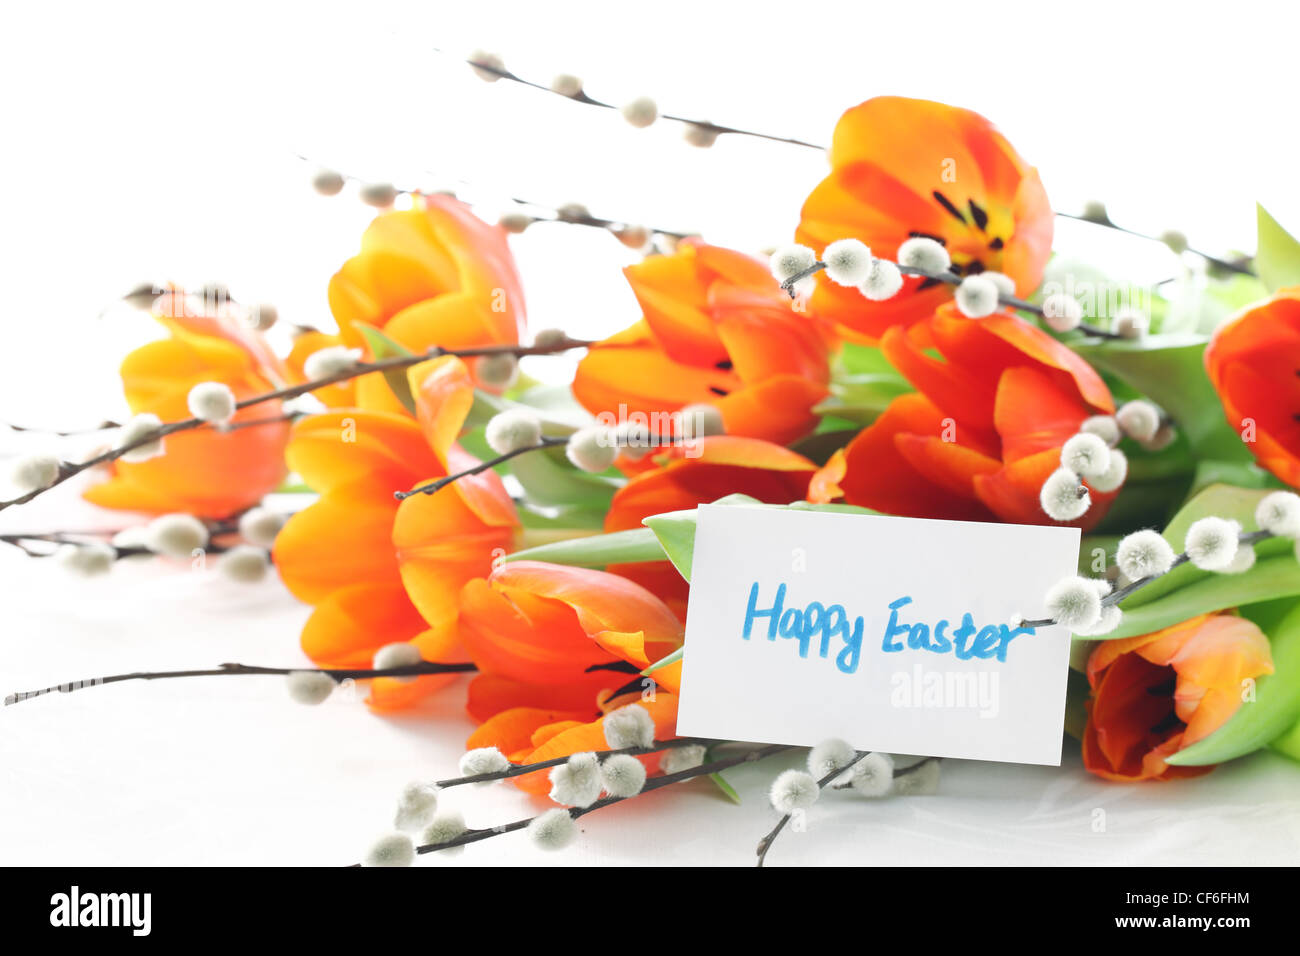 Tulips,silver-bud willow and card,Happy easter. - Stock Image